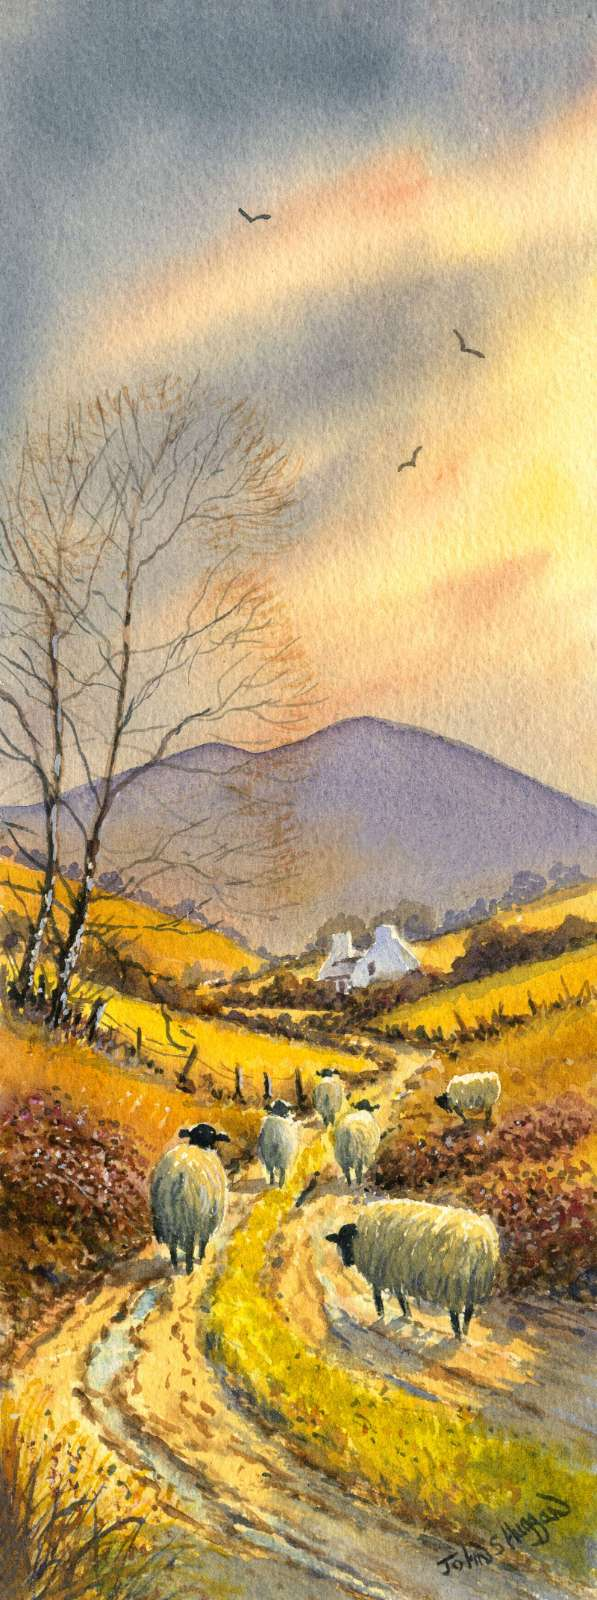 Sheep In The Sperrins Print (LNG013)